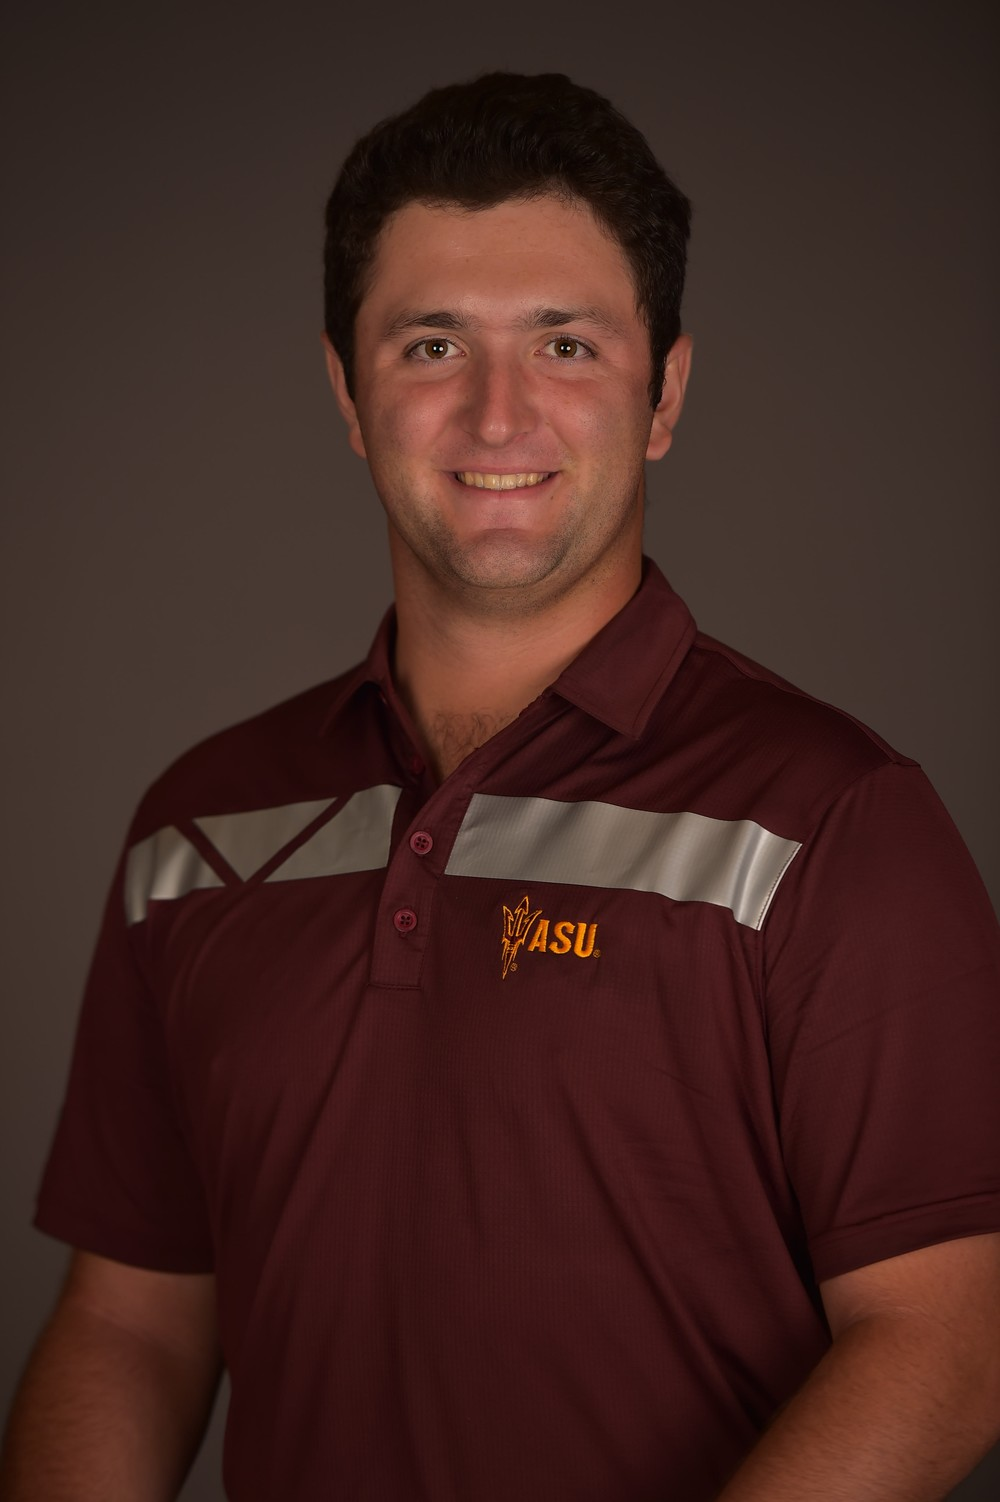 Jon Rahm during his college years.